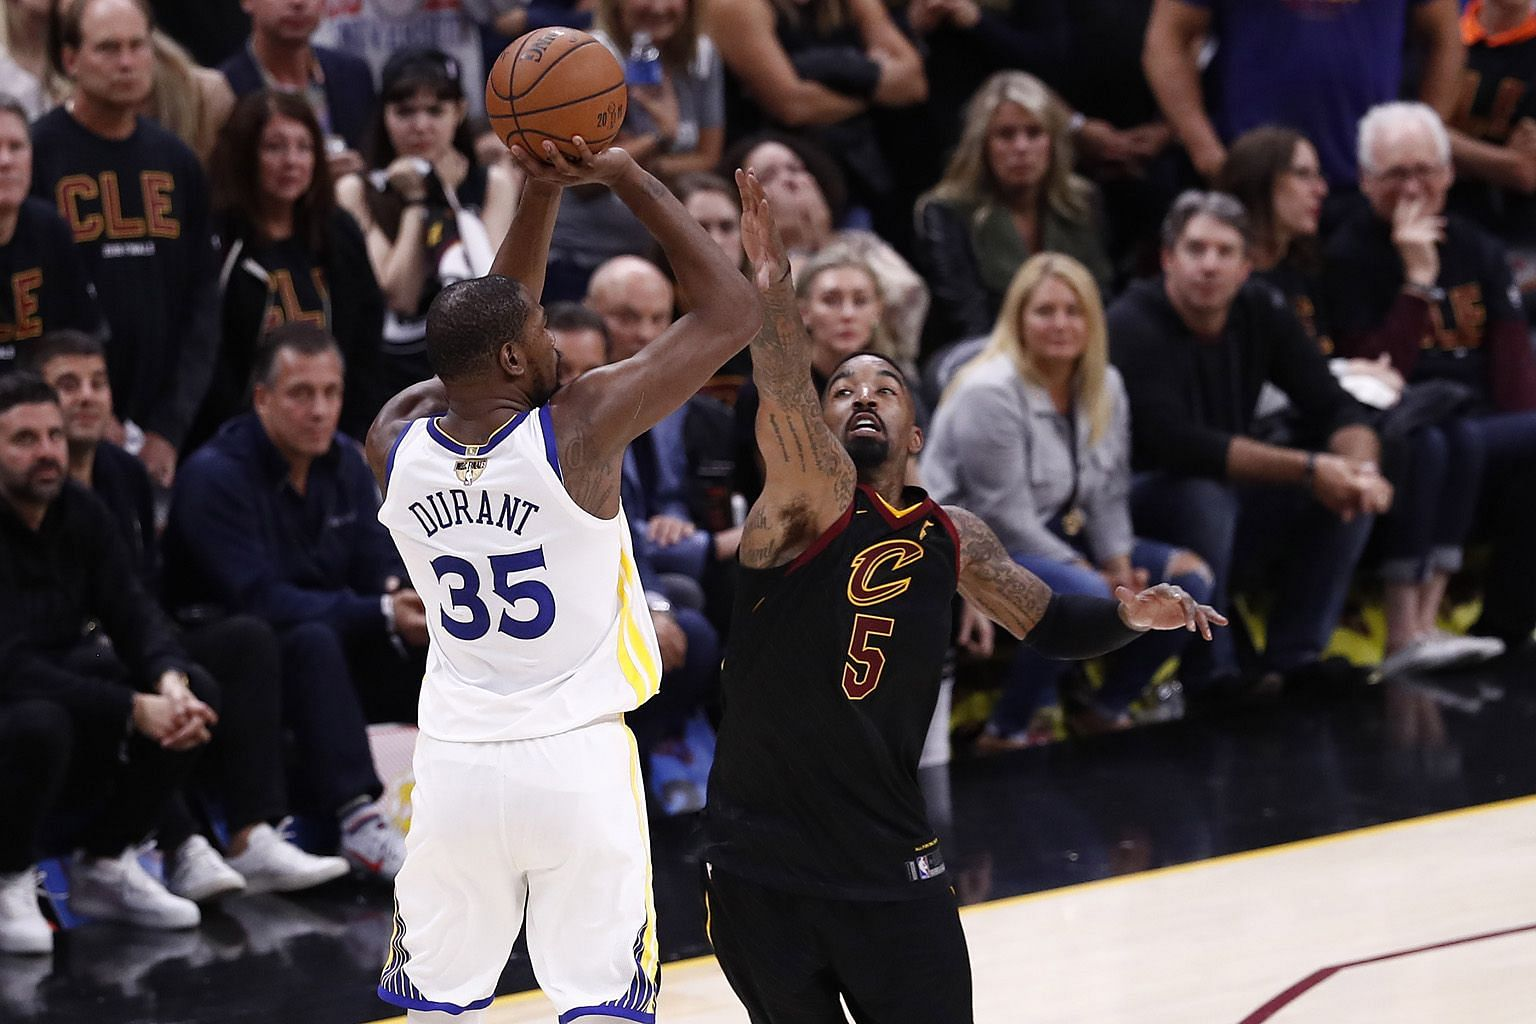 Golden State forward Kevin Durant shooting the crucial three-pointer over Cleveland guard J.R. Smith with under a minute left of Game 3 in the NBA Finals. His heroics were sorely needed as the Warriors' second-highest scorer Stephen Curry had only 11